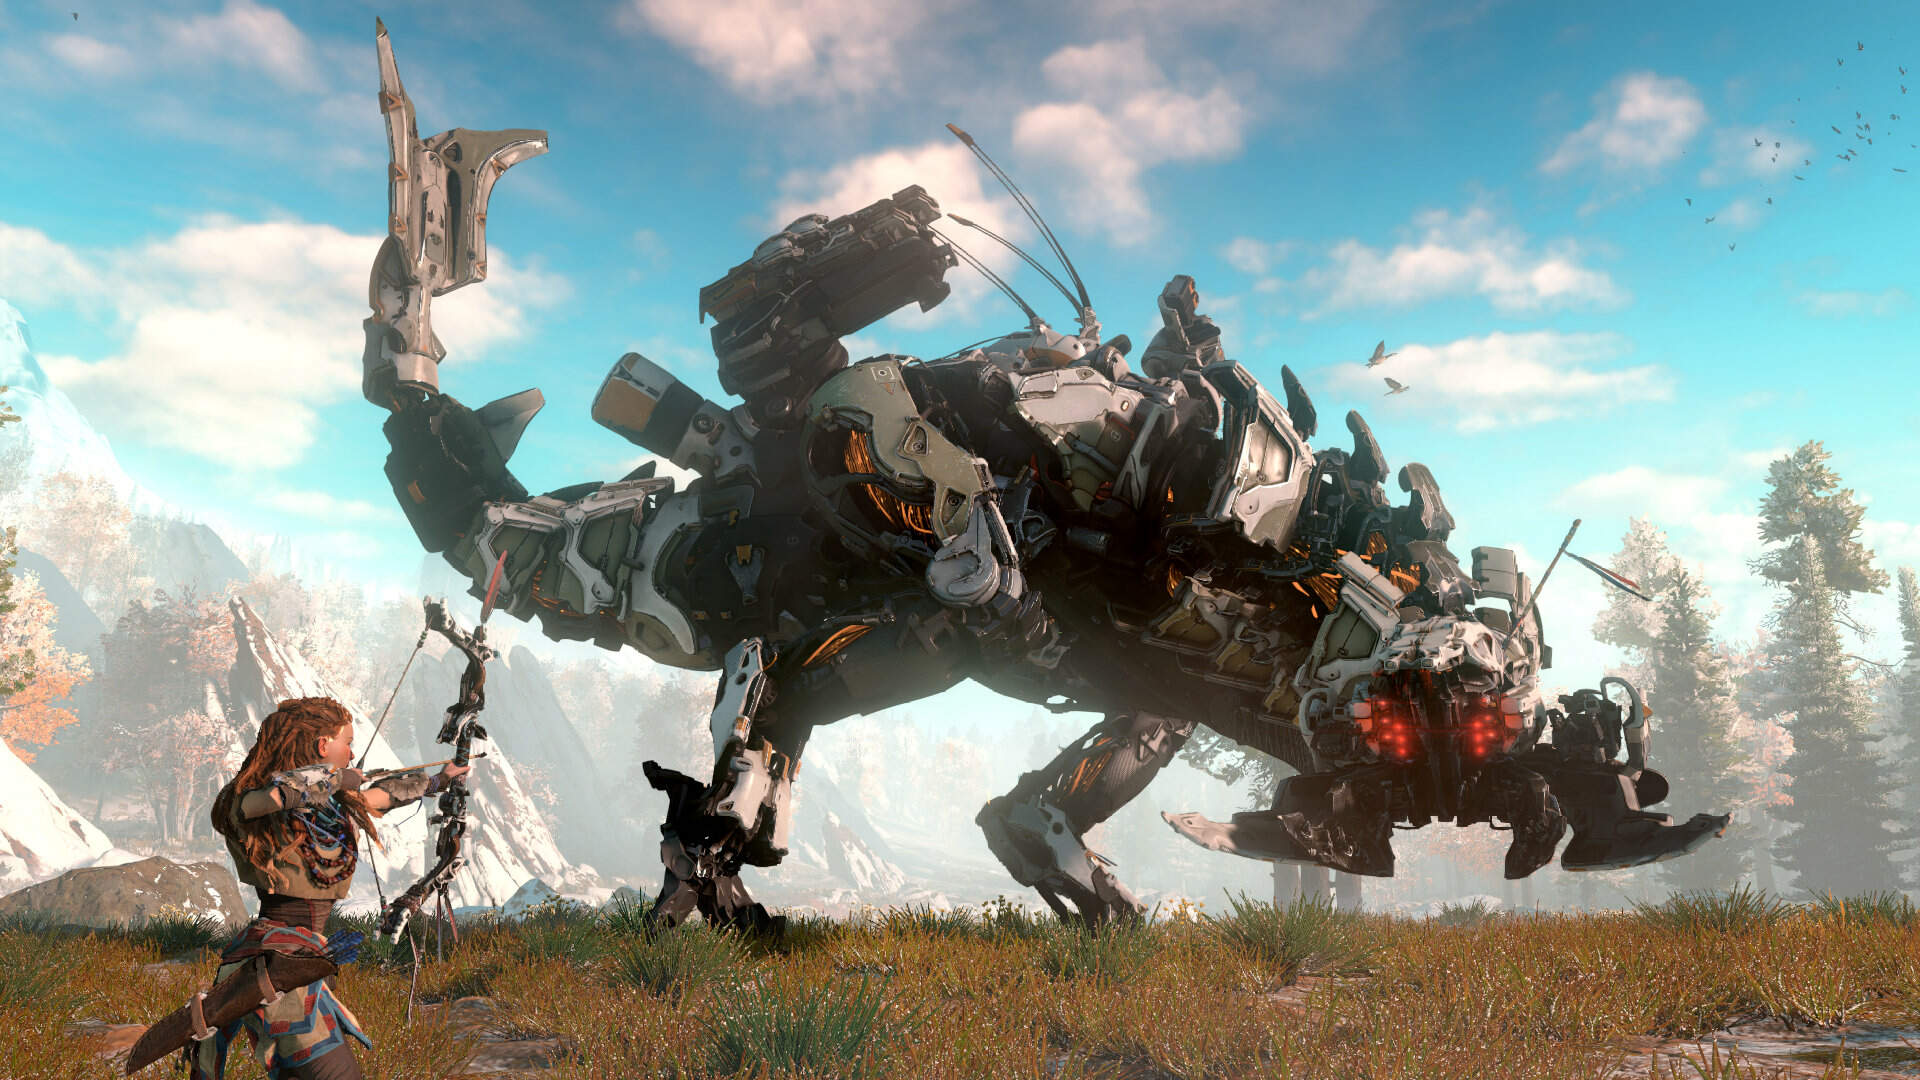 Report: Horizon Zero Dawn May Leave PS4 Exclusivity Behind for PC